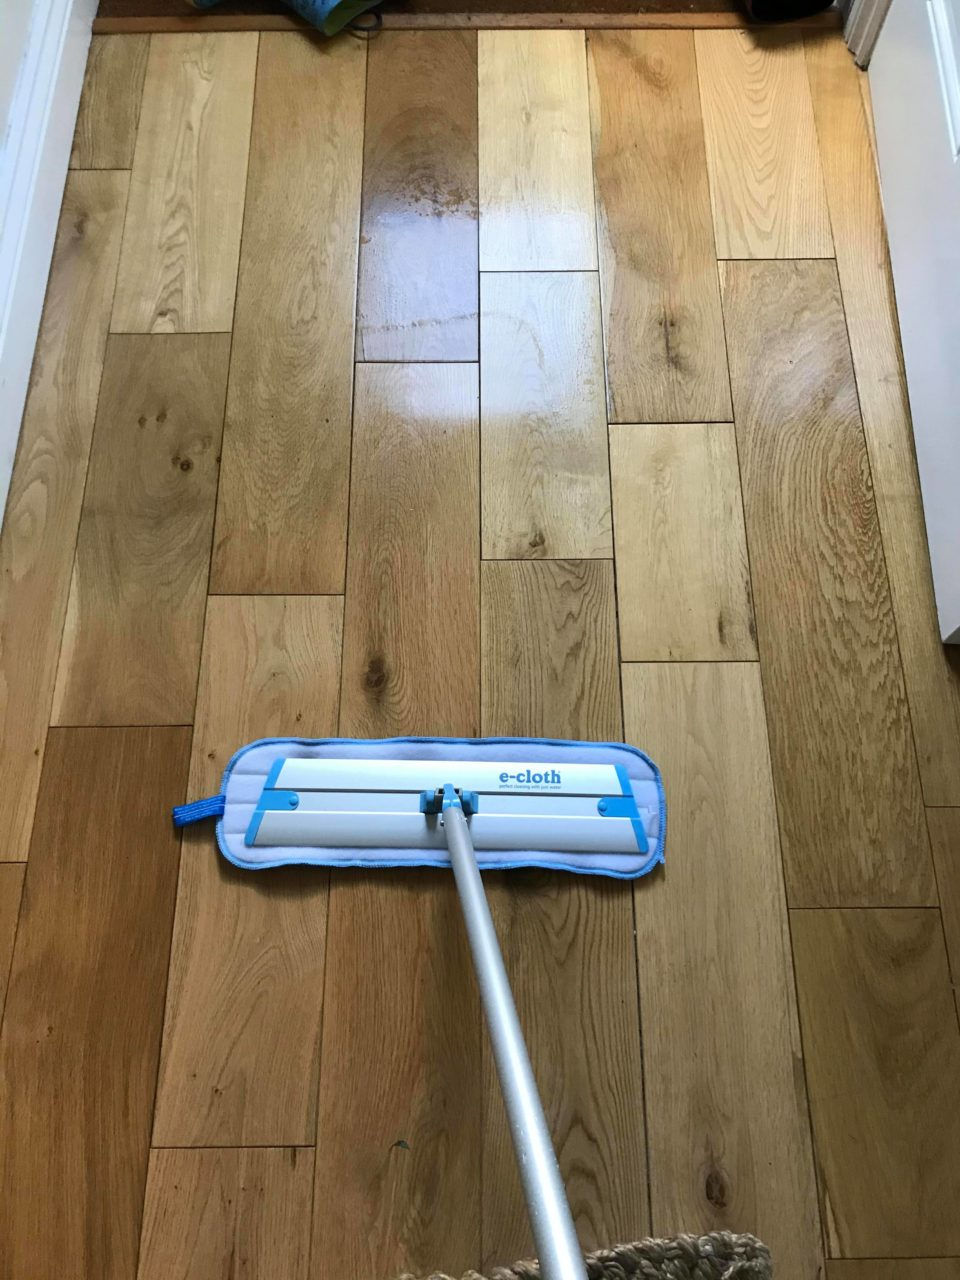 cleaning the wooden floor